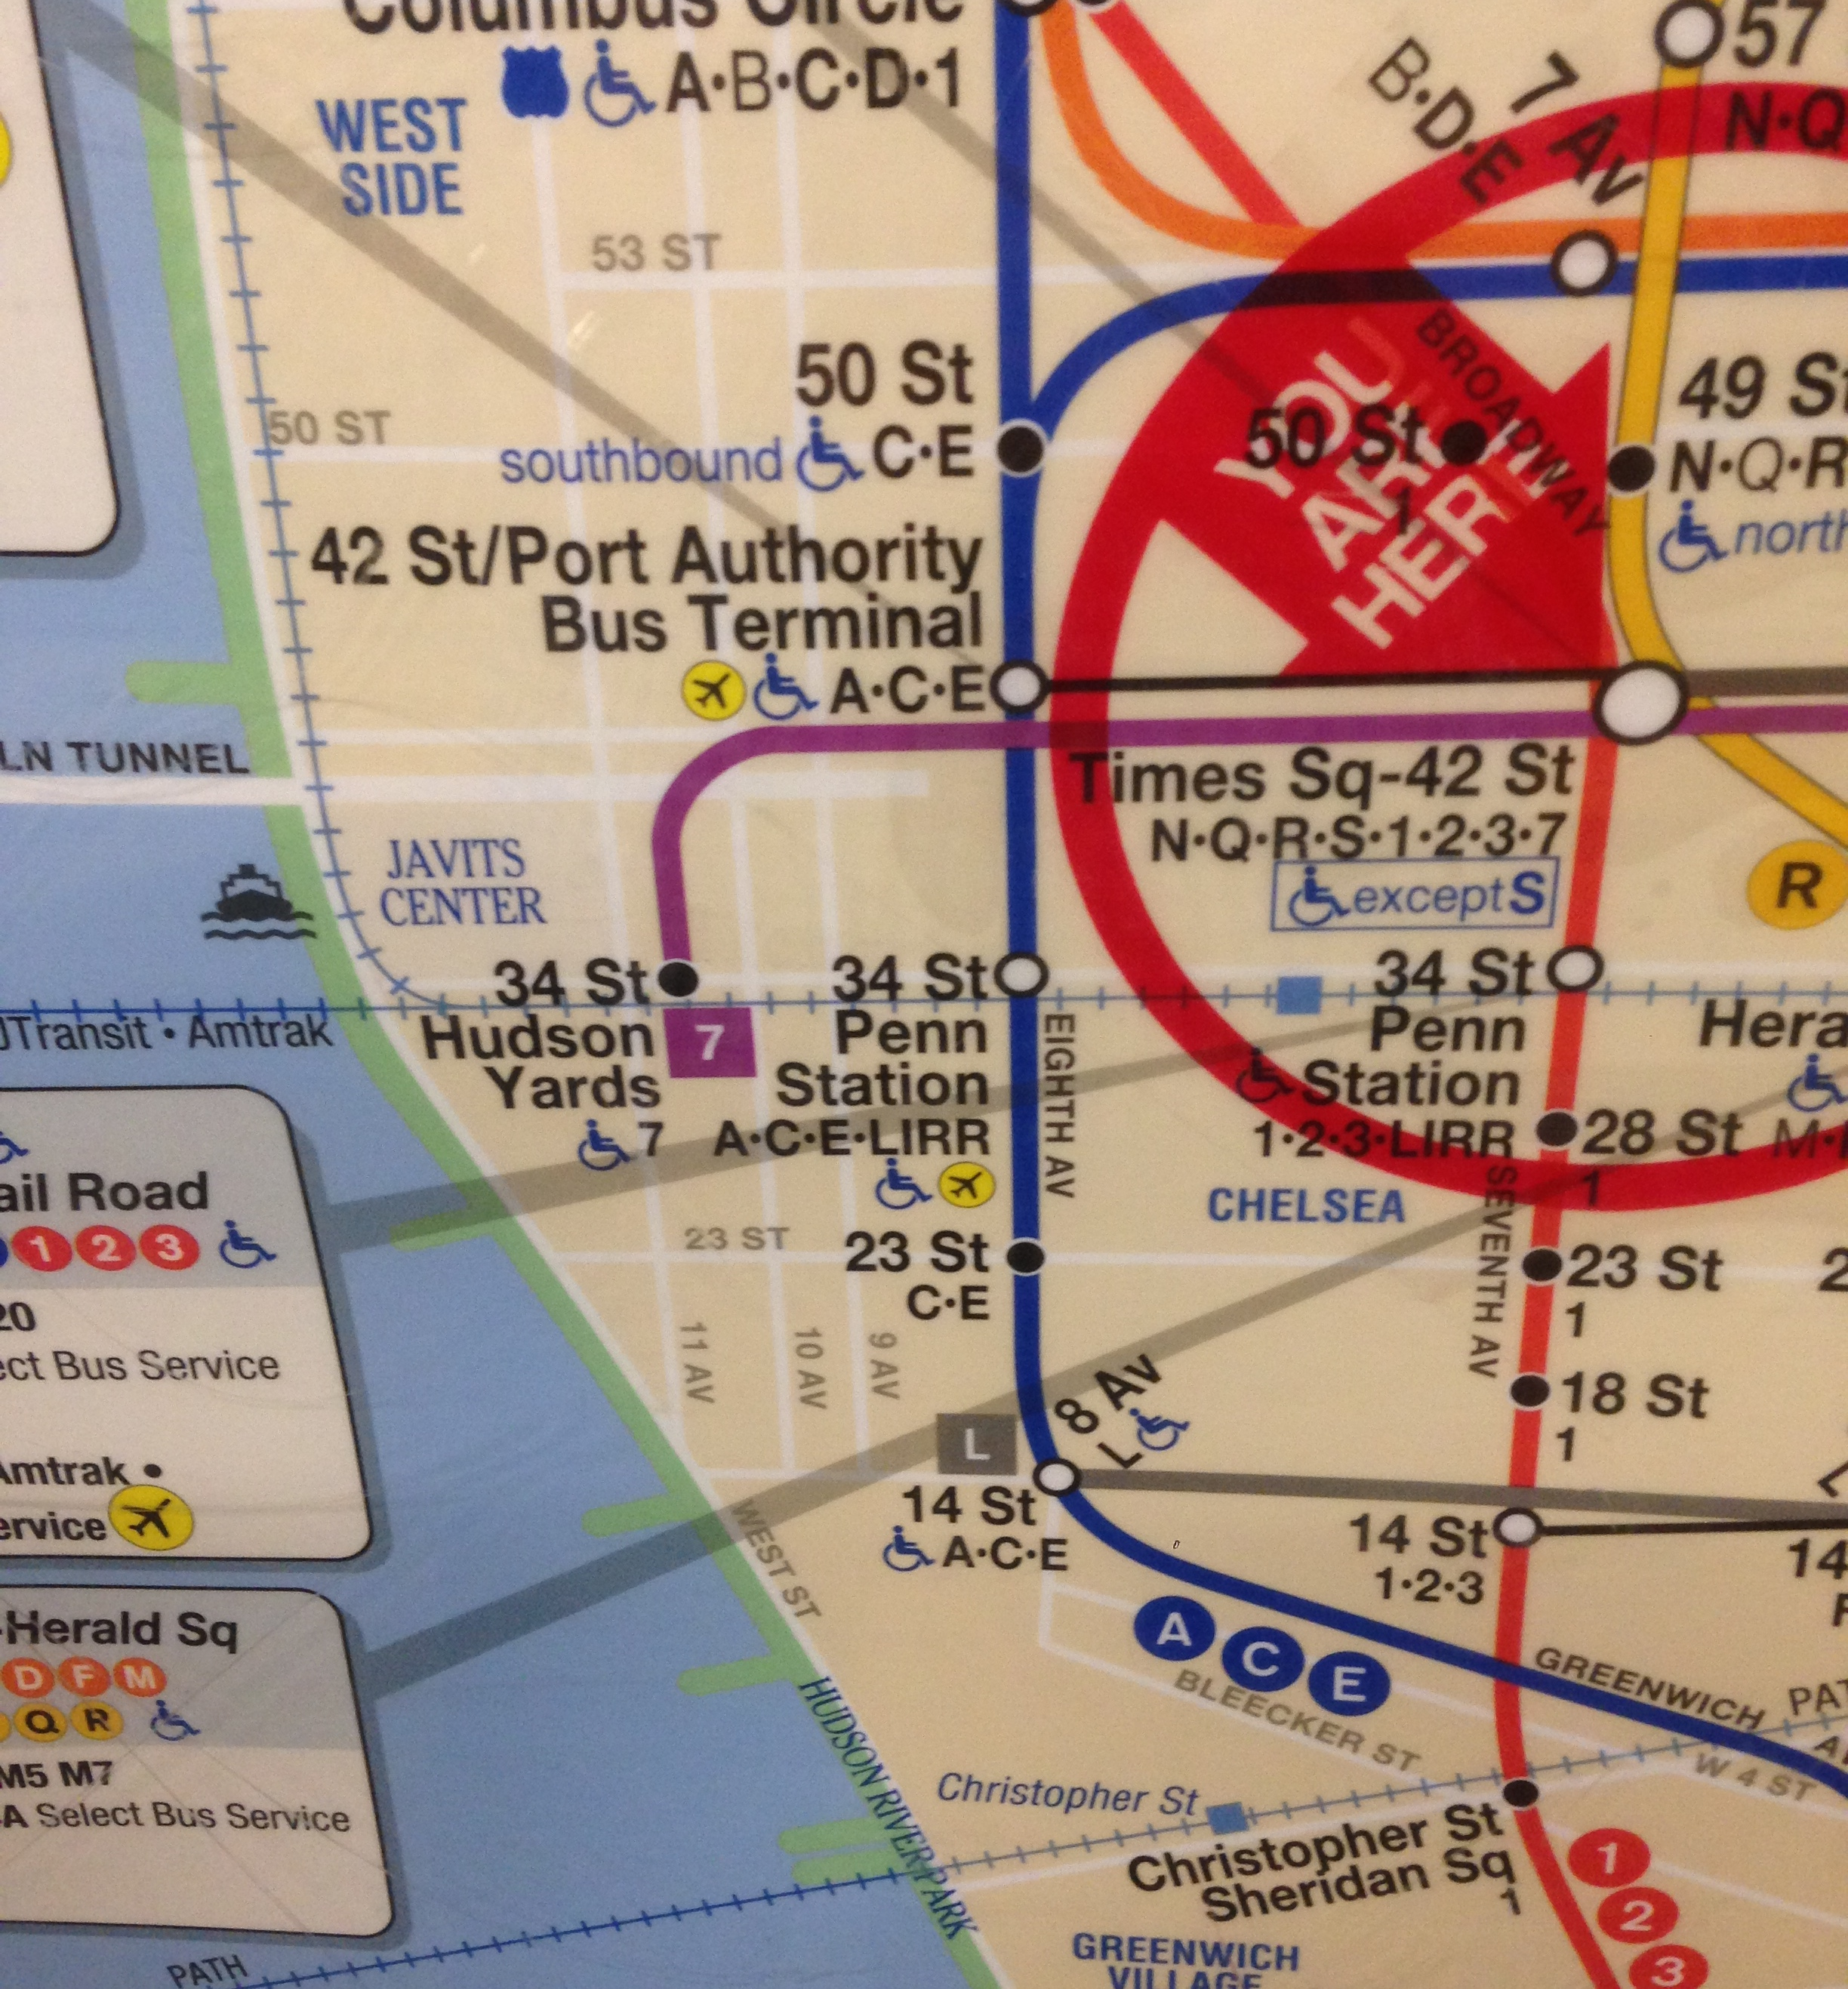 Nyc Subway Map Jpeg.File Nyc Subway Map At Times Square Showing Hudson Yards Jpg